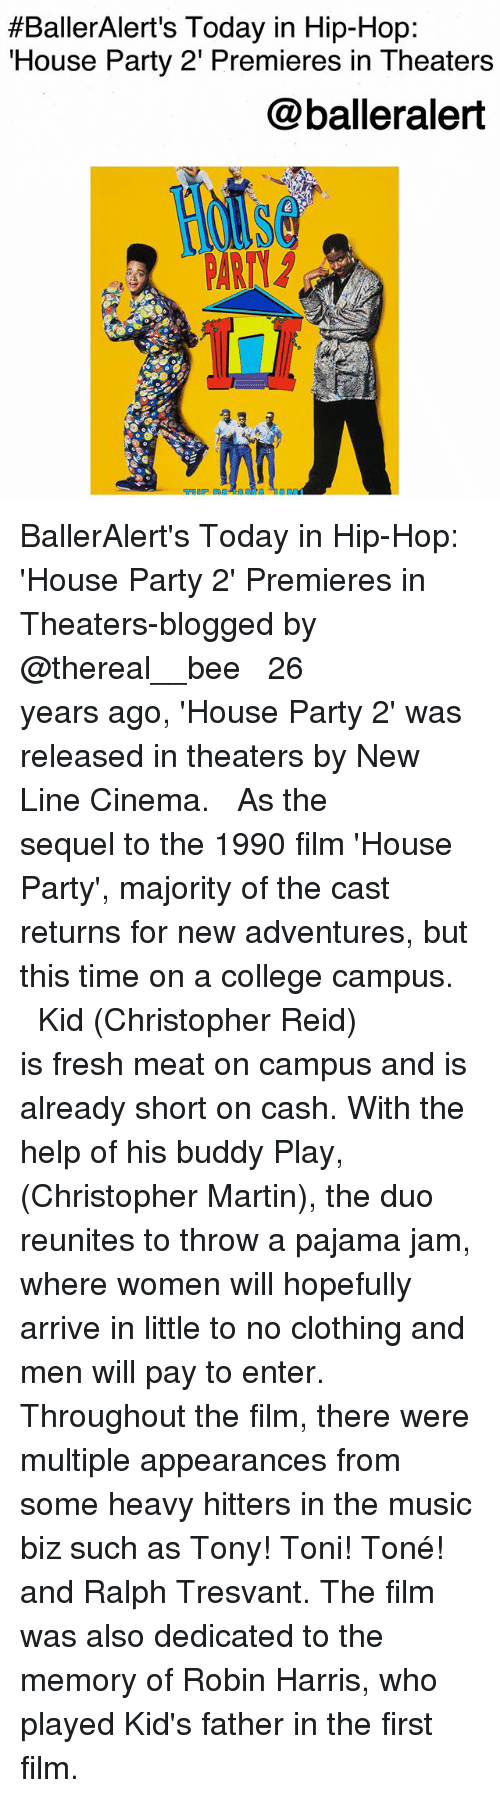 College, Fresh, and Martin:  #BallerAlert's Today in Hip-Hop  House Party 2' Premieres in Theaters  @balleralert BallerAlert's Today in Hip-Hop: 'House Party 2' Premieres in Theaters-blogged by @thereal__bee ⠀⠀⠀⠀⠀⠀⠀⠀⠀ ⠀⠀ 26 years ago, 'House Party 2' was released in theaters by New Line Cinema. ⠀⠀⠀⠀⠀⠀⠀⠀⠀ ⠀⠀ As the sequel to the 1990 film 'House Party', majority of the cast returns for new adventures, but this time on a college campus. ⠀⠀⠀⠀⠀⠀⠀⠀⠀ ⠀⠀ Kid (Christopher Reid) is fresh meat on campus and is already short on cash. With the help of his buddy Play, (Christopher Martin), the duo reunites to throw a pajama jam, where women will hopefully arrive in little to no clothing and men will pay to enter. ⠀⠀⠀⠀⠀⠀⠀⠀⠀ ⠀⠀ Throughout the film, there were multiple appearances from some heavy hitters in the music biz such as Tony! Toni! Toné! and Ralph Tresvant. The film was also dedicated to the memory of Robin Harris, who played Kid's father in the first film.